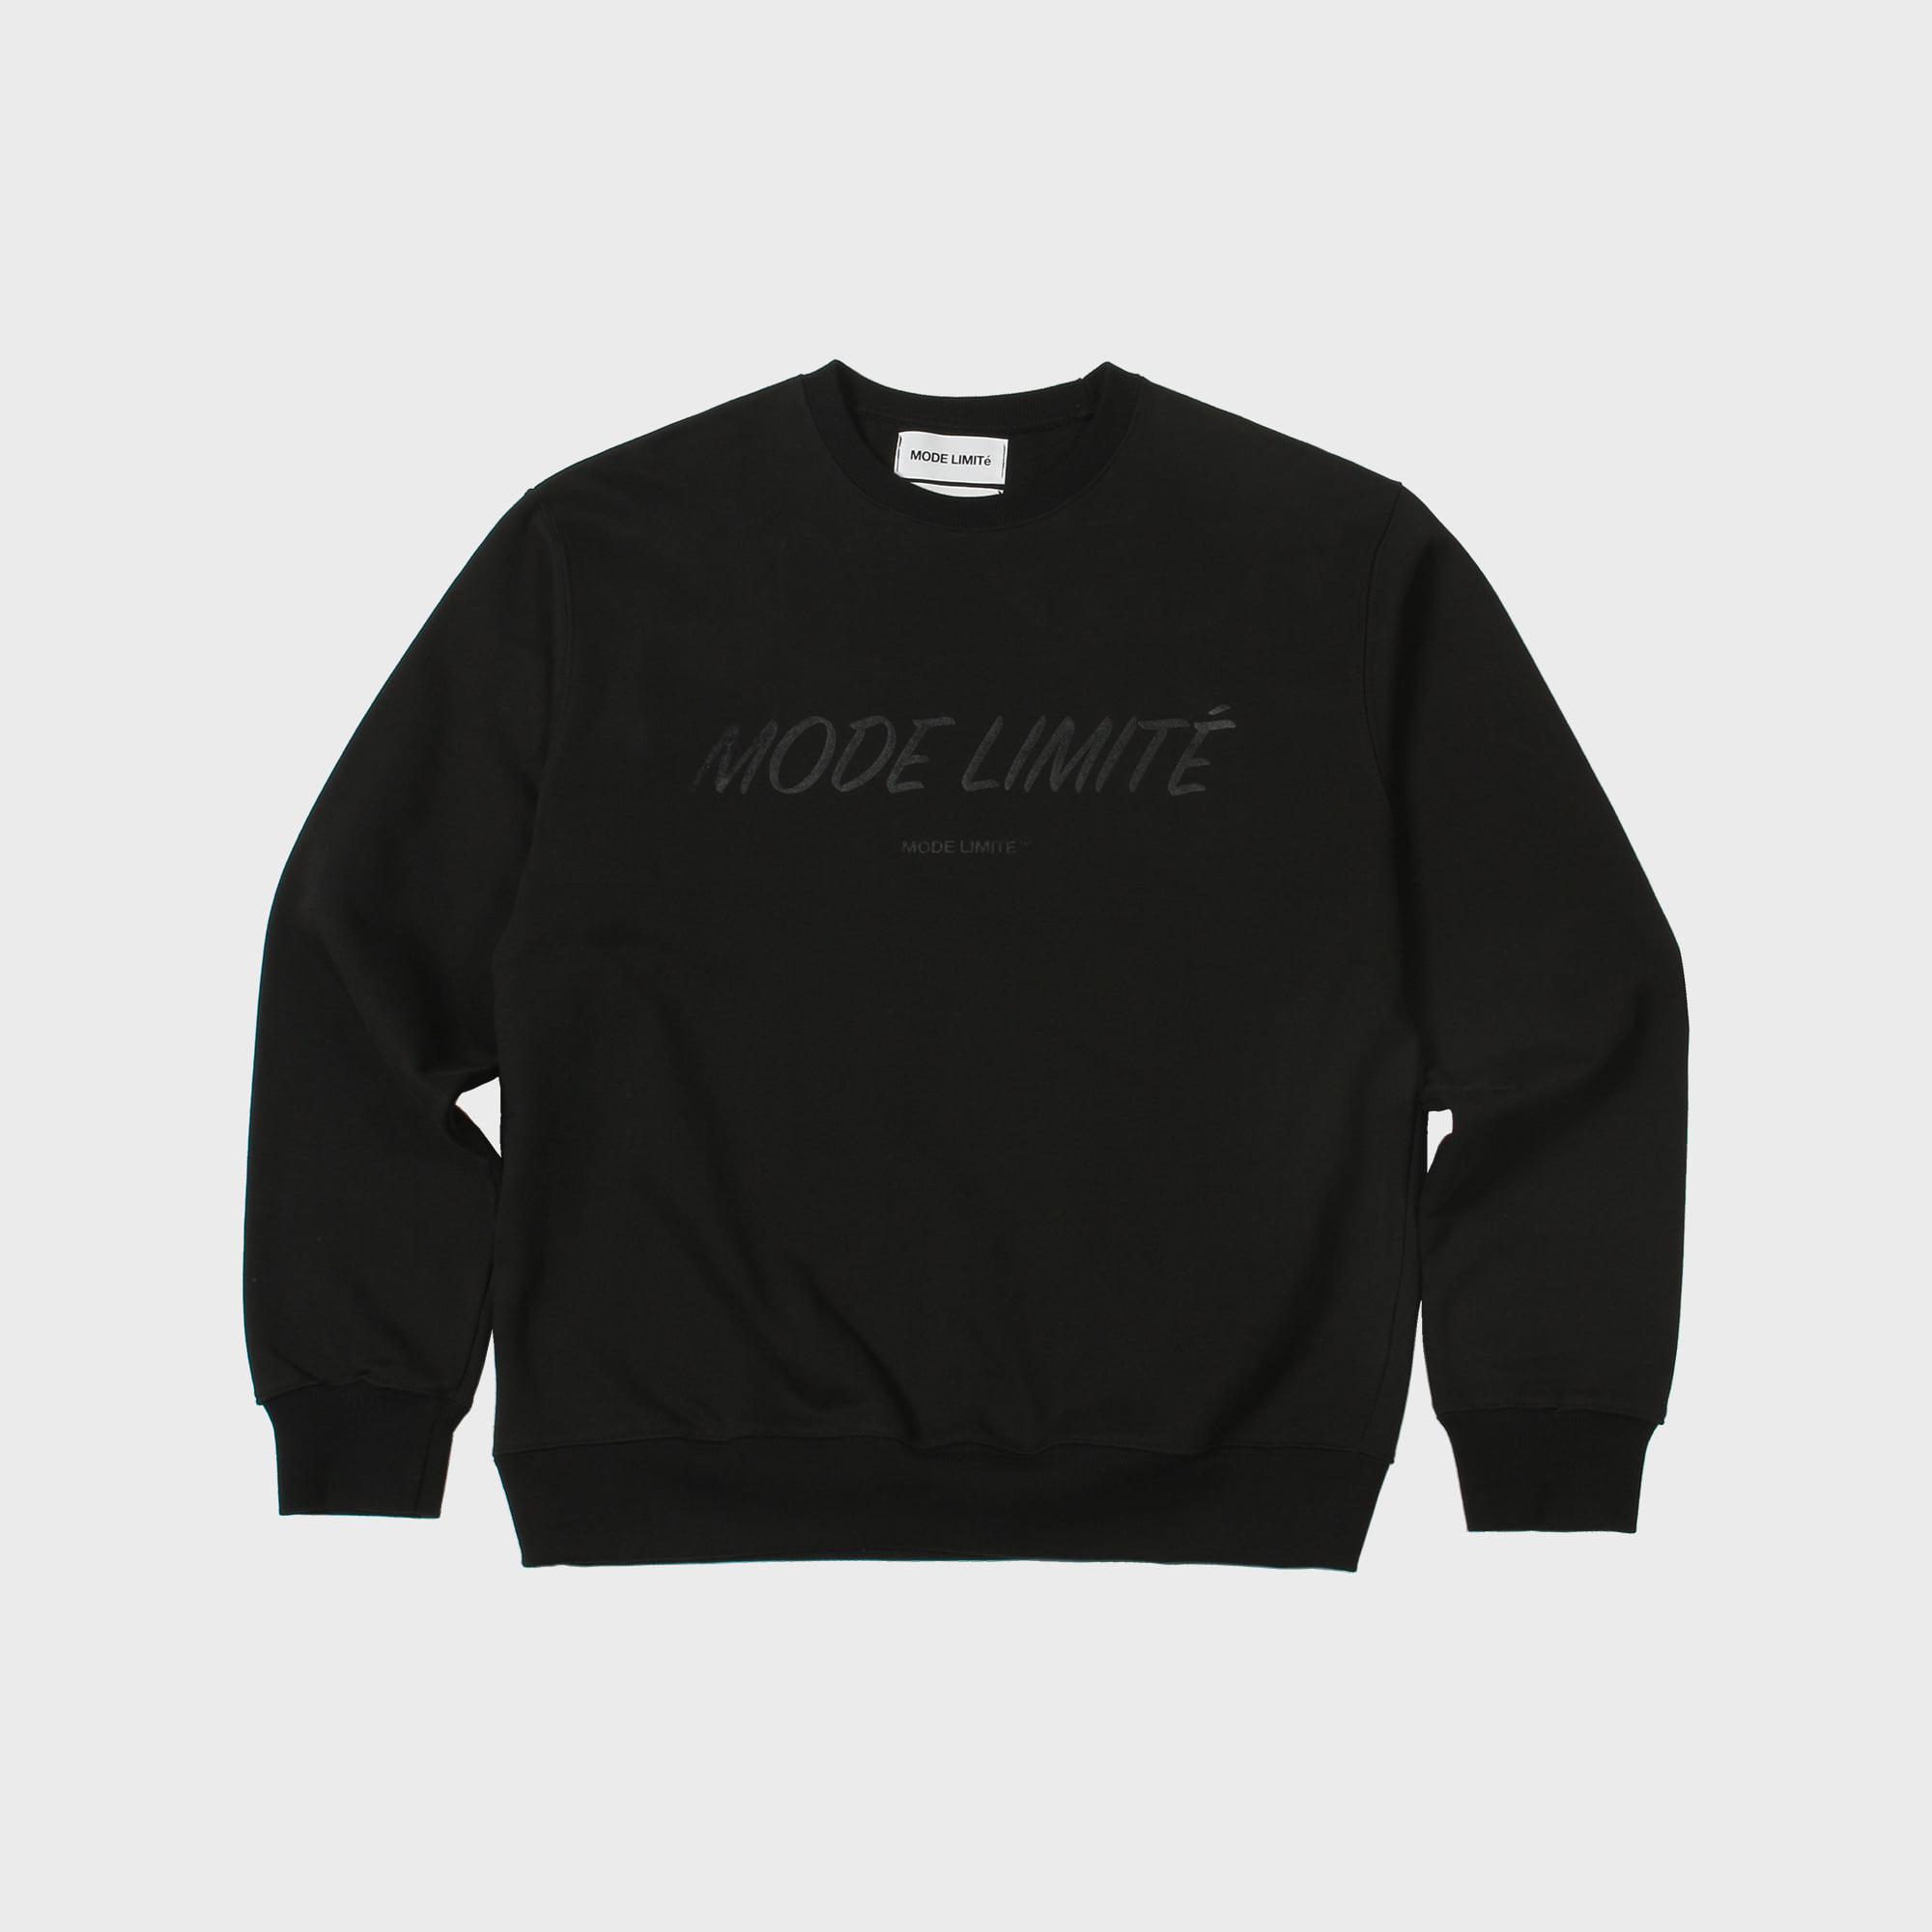 Mode Limite Sweatshirt Black